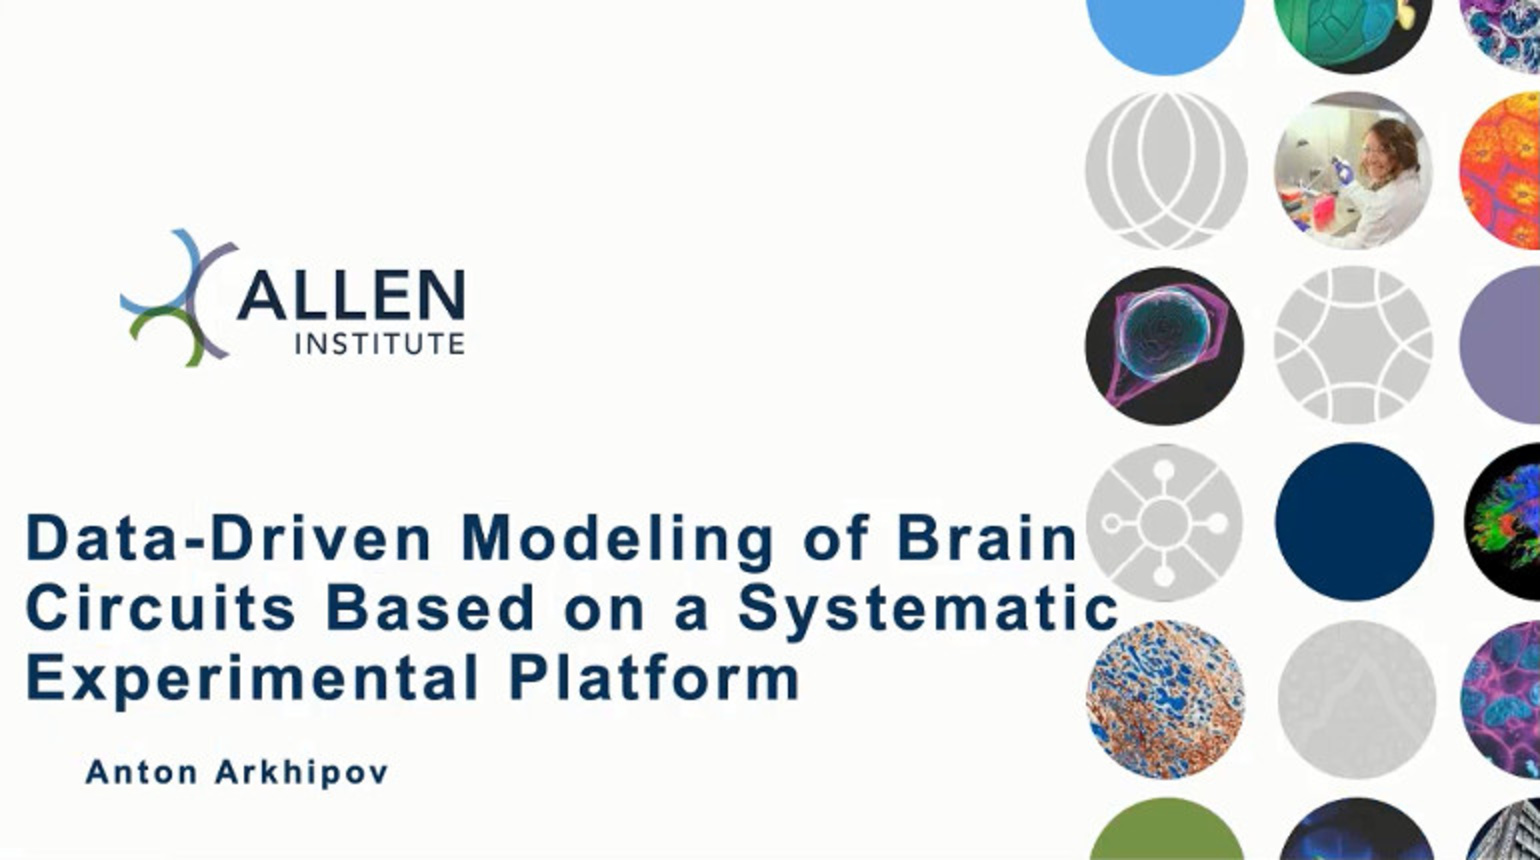 IEEE Brain: Data-Driven Modeling of Brain Circuits Based on a Systematic Experimental Platform